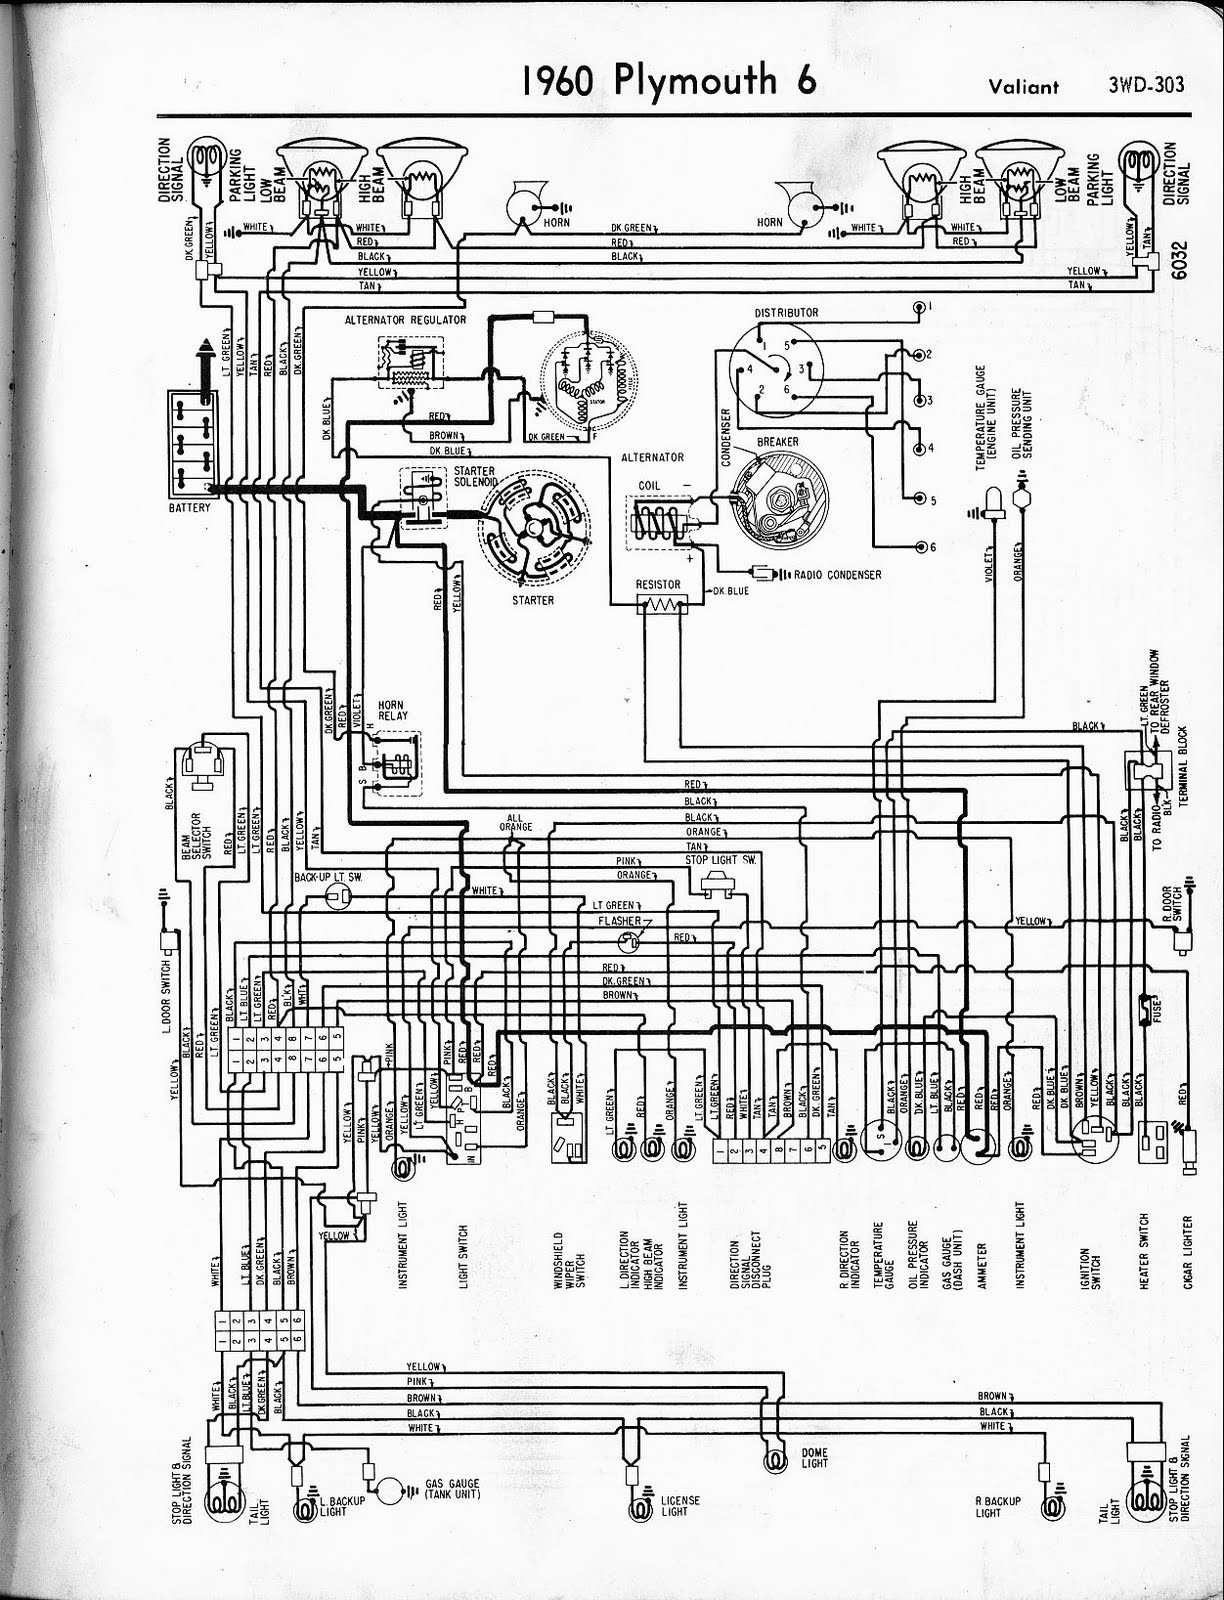 04 honda civic ac wiring diagram html with 1960 Plymouth Valiant Wiring Diagram on 1983 1989 Ford Ranger Headlight Wiring further 01 Toyota Sienna Parts Diagram further 1985 Gmc Truck Front Side Wiring additionally 1960 Plymouth Valiant Wiring Diagram besides 2003 Honda Accord A C Relay Location.